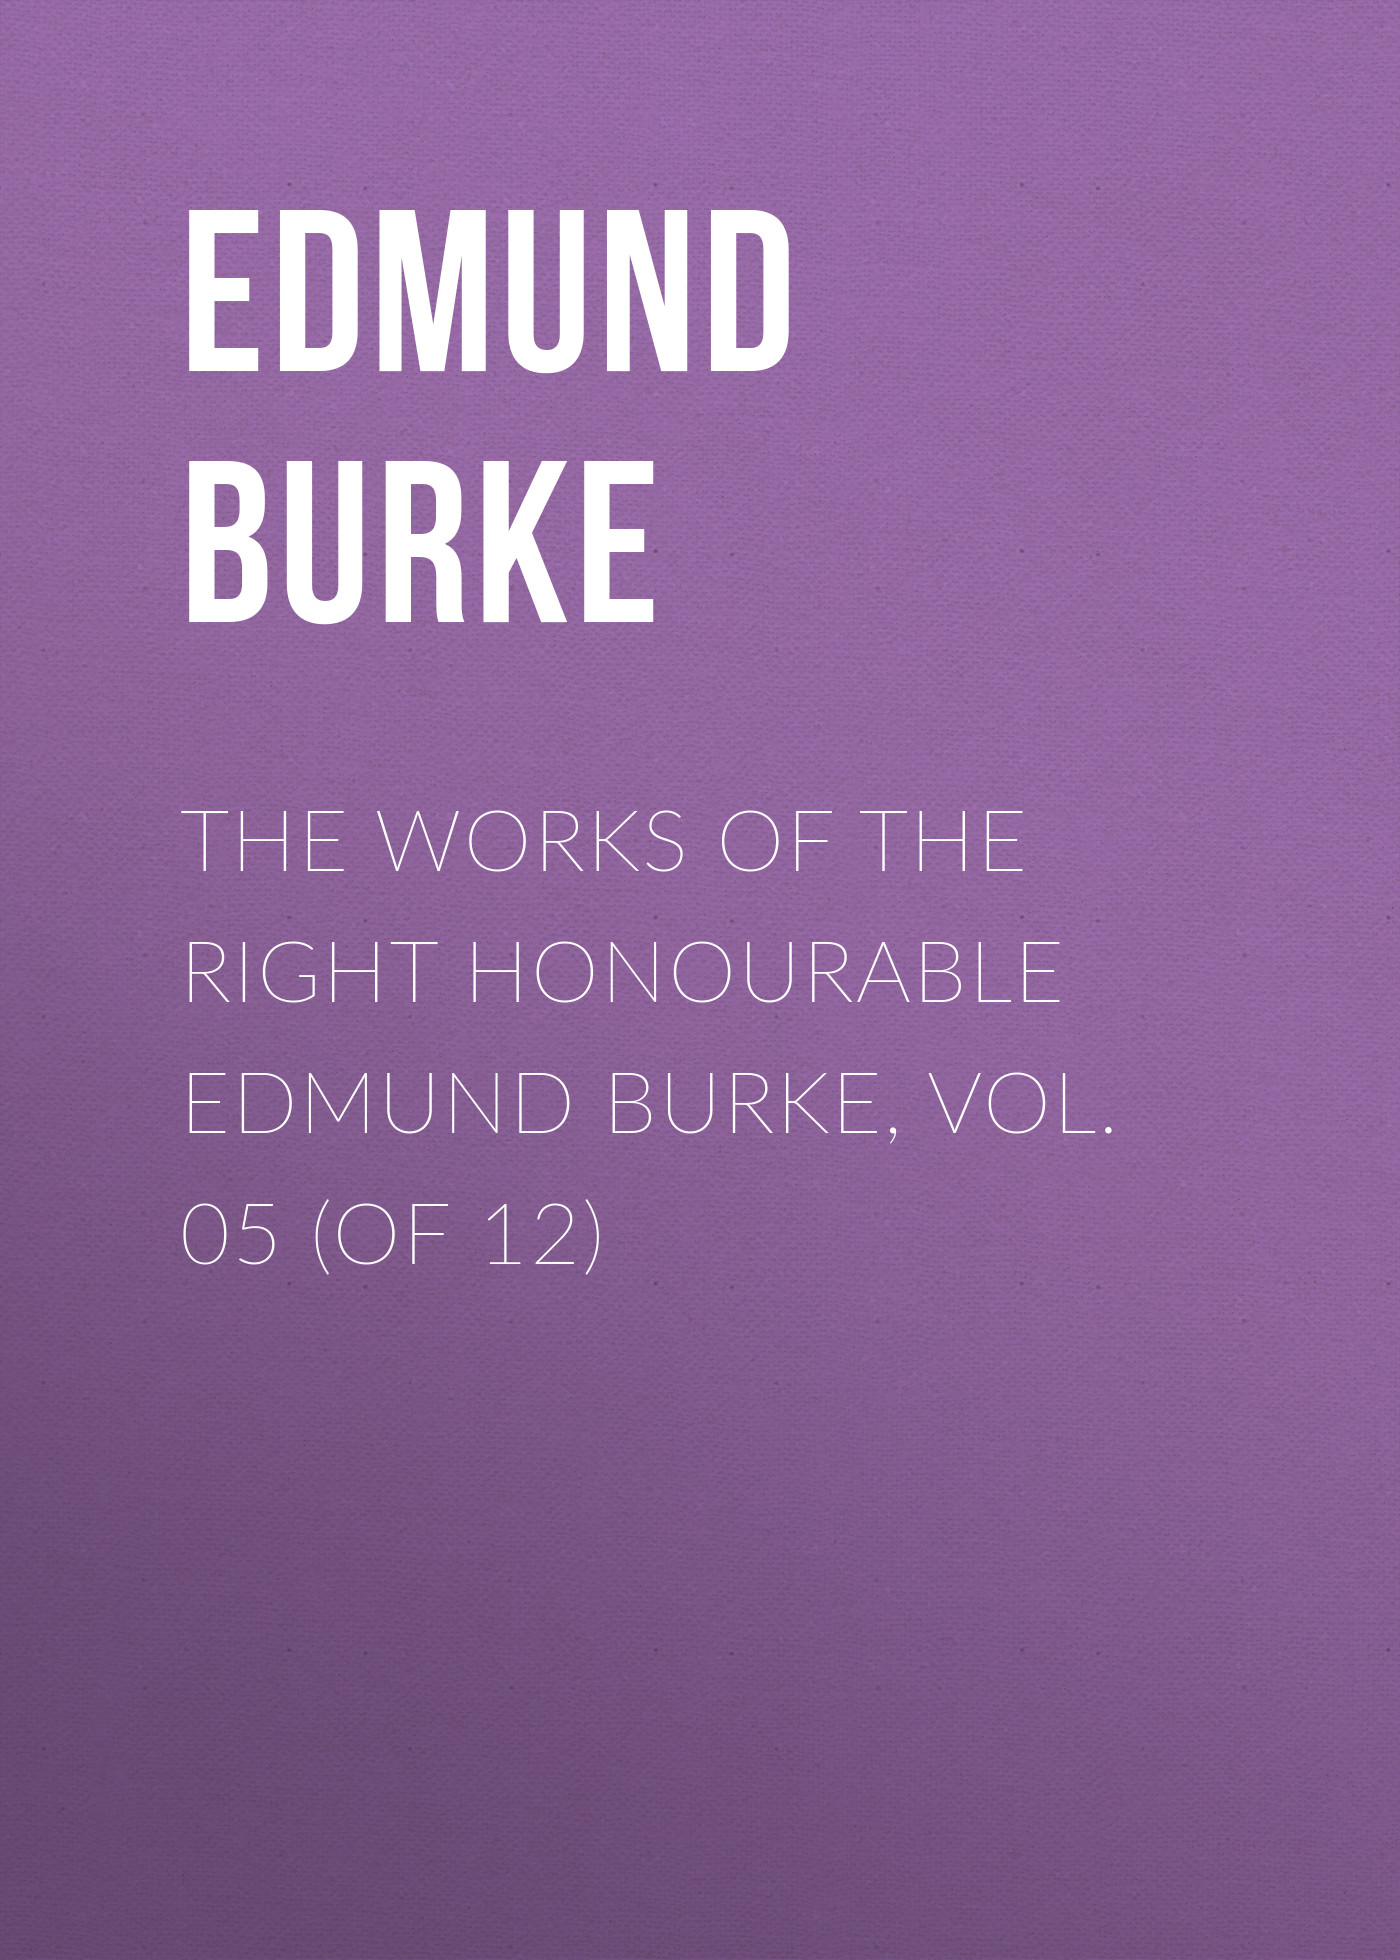 Edmund Burke The Works of the Right Honourable Edmund Burke, Vol. 05 (of 12) edmund burke the works of the right honourable edmund burke vol 12 of 12